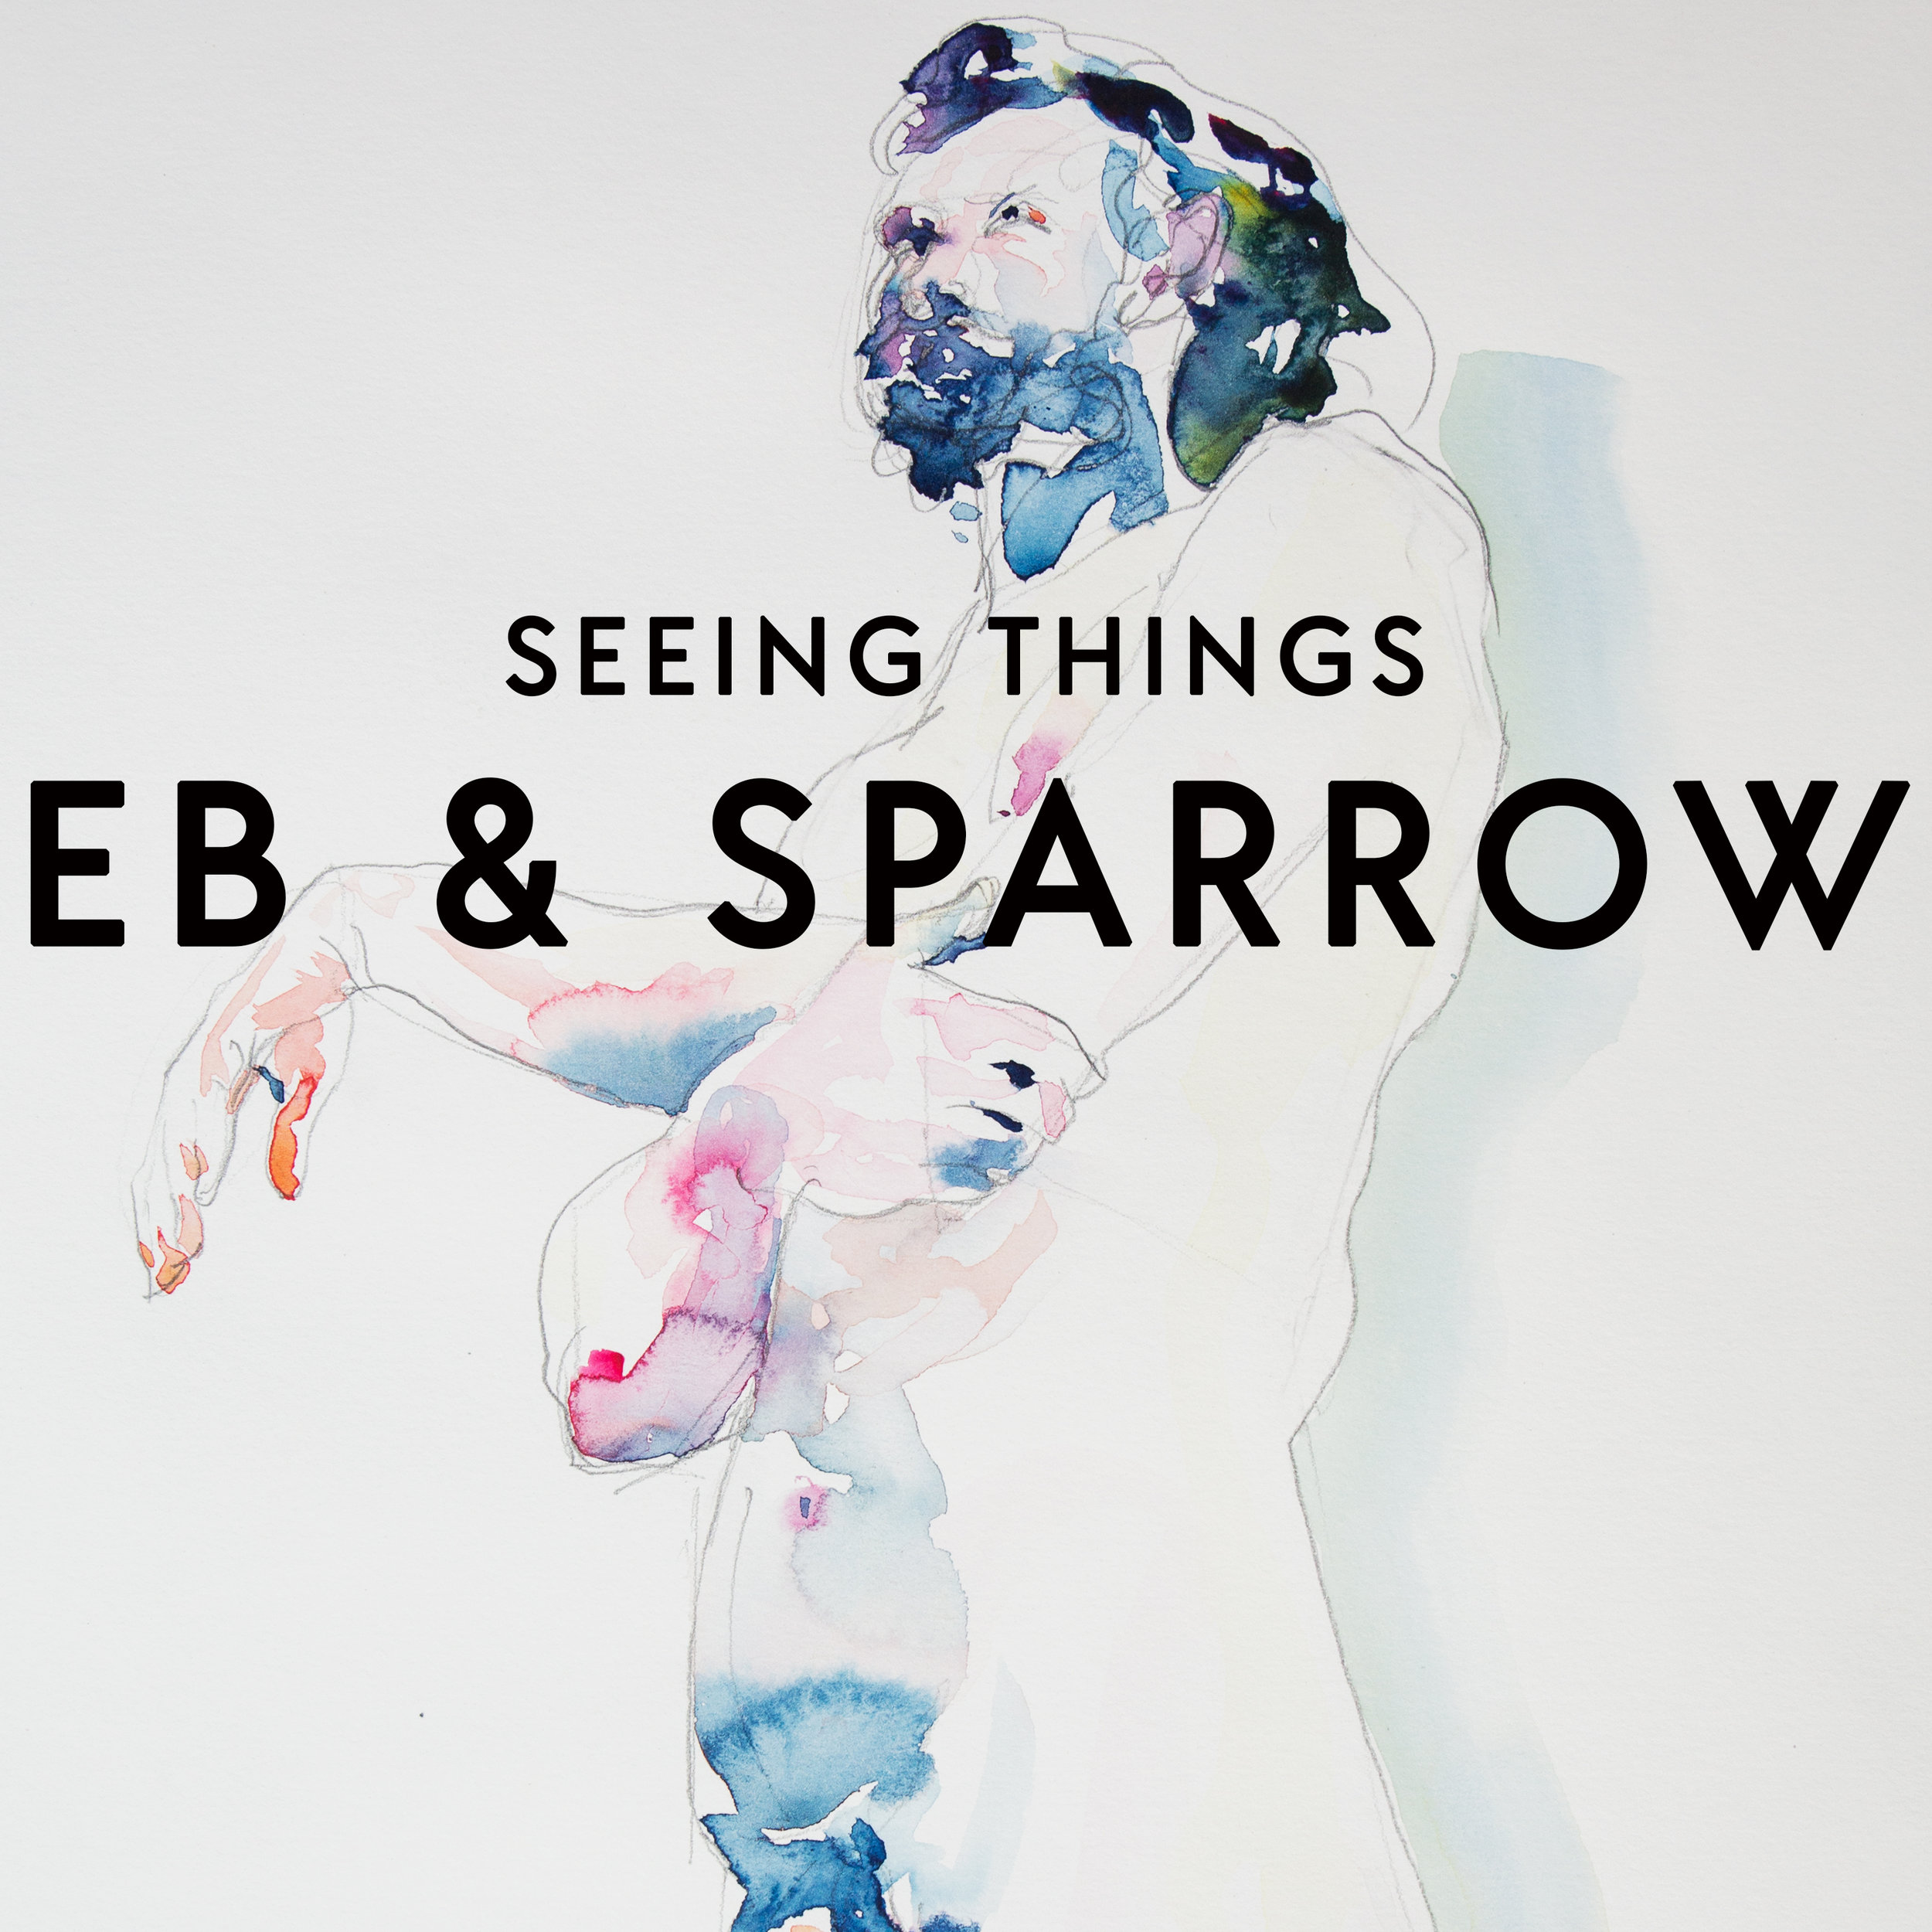 Eb & Sparrow - SEEING THINGS album cover WEB 2018.jpg